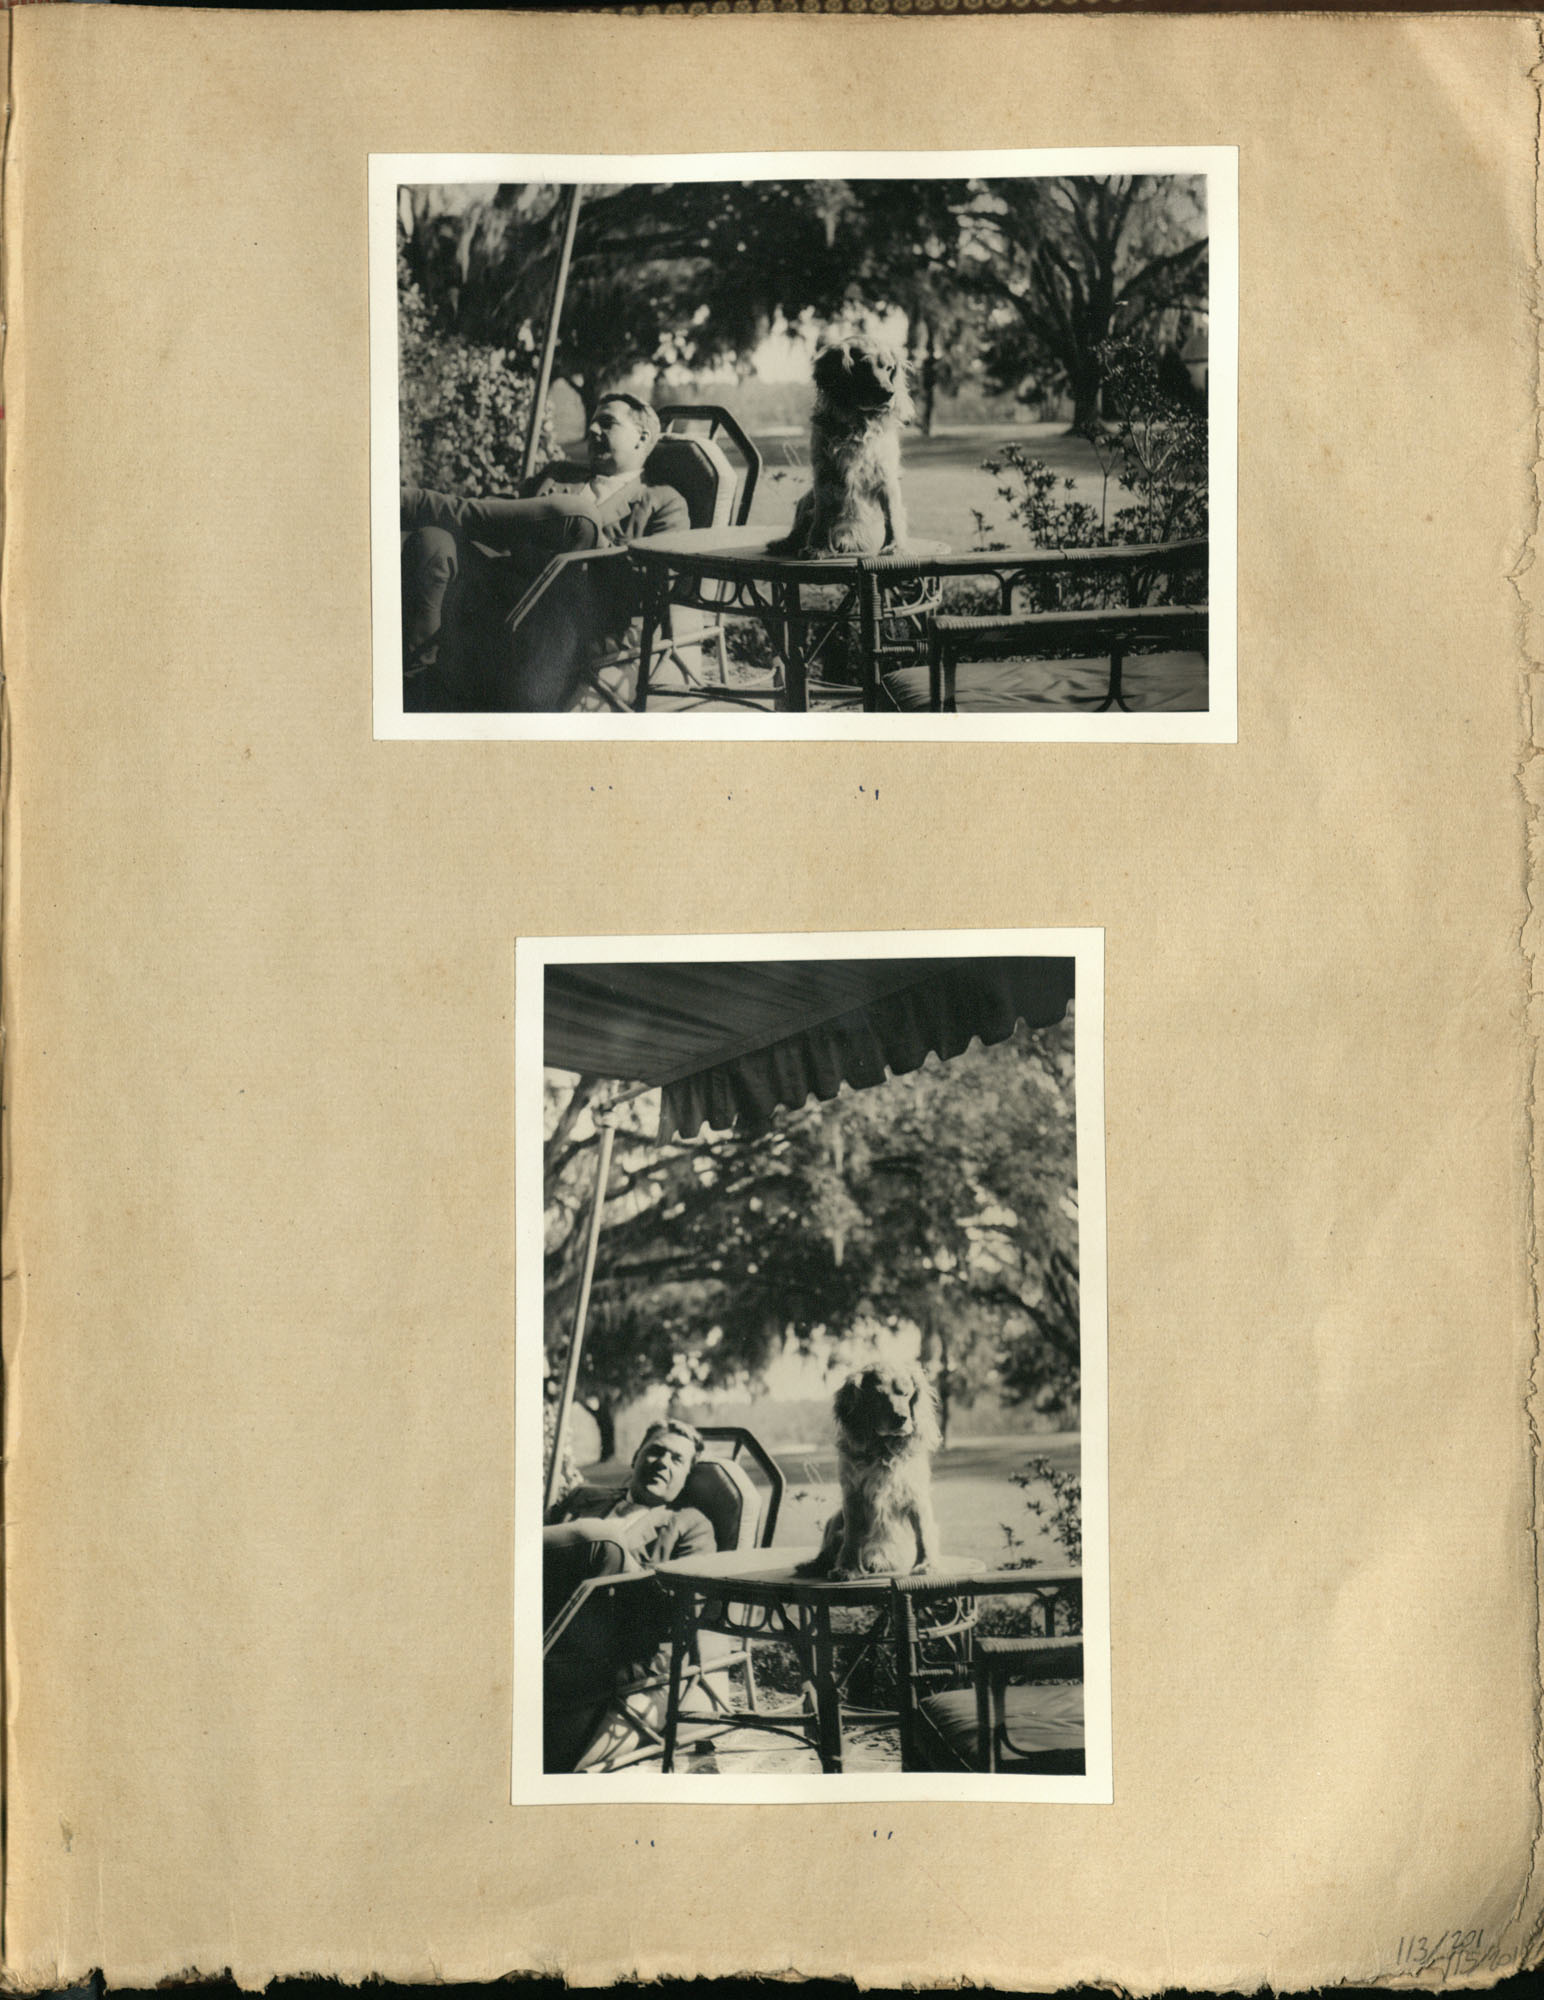 Early Medway and travels album, 1929-1937, page 113